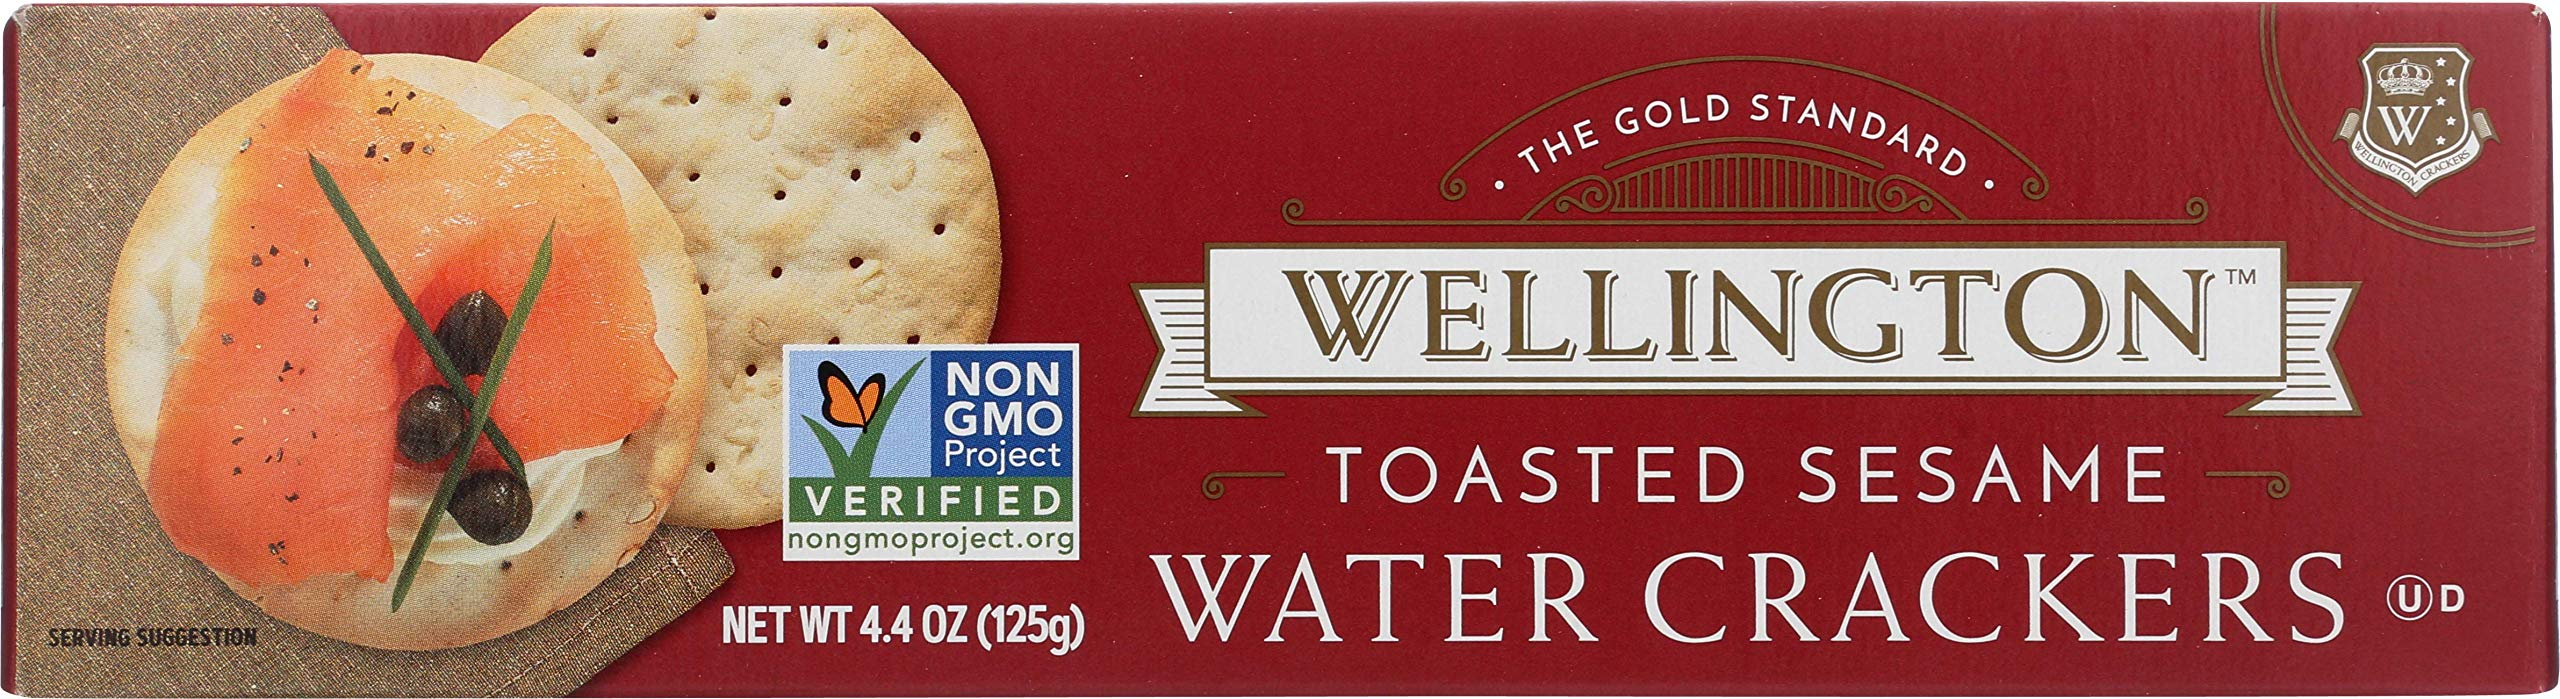 Wellington Toasted Sesame Water Crackers, 4.4-Ounces (Pack of 12)